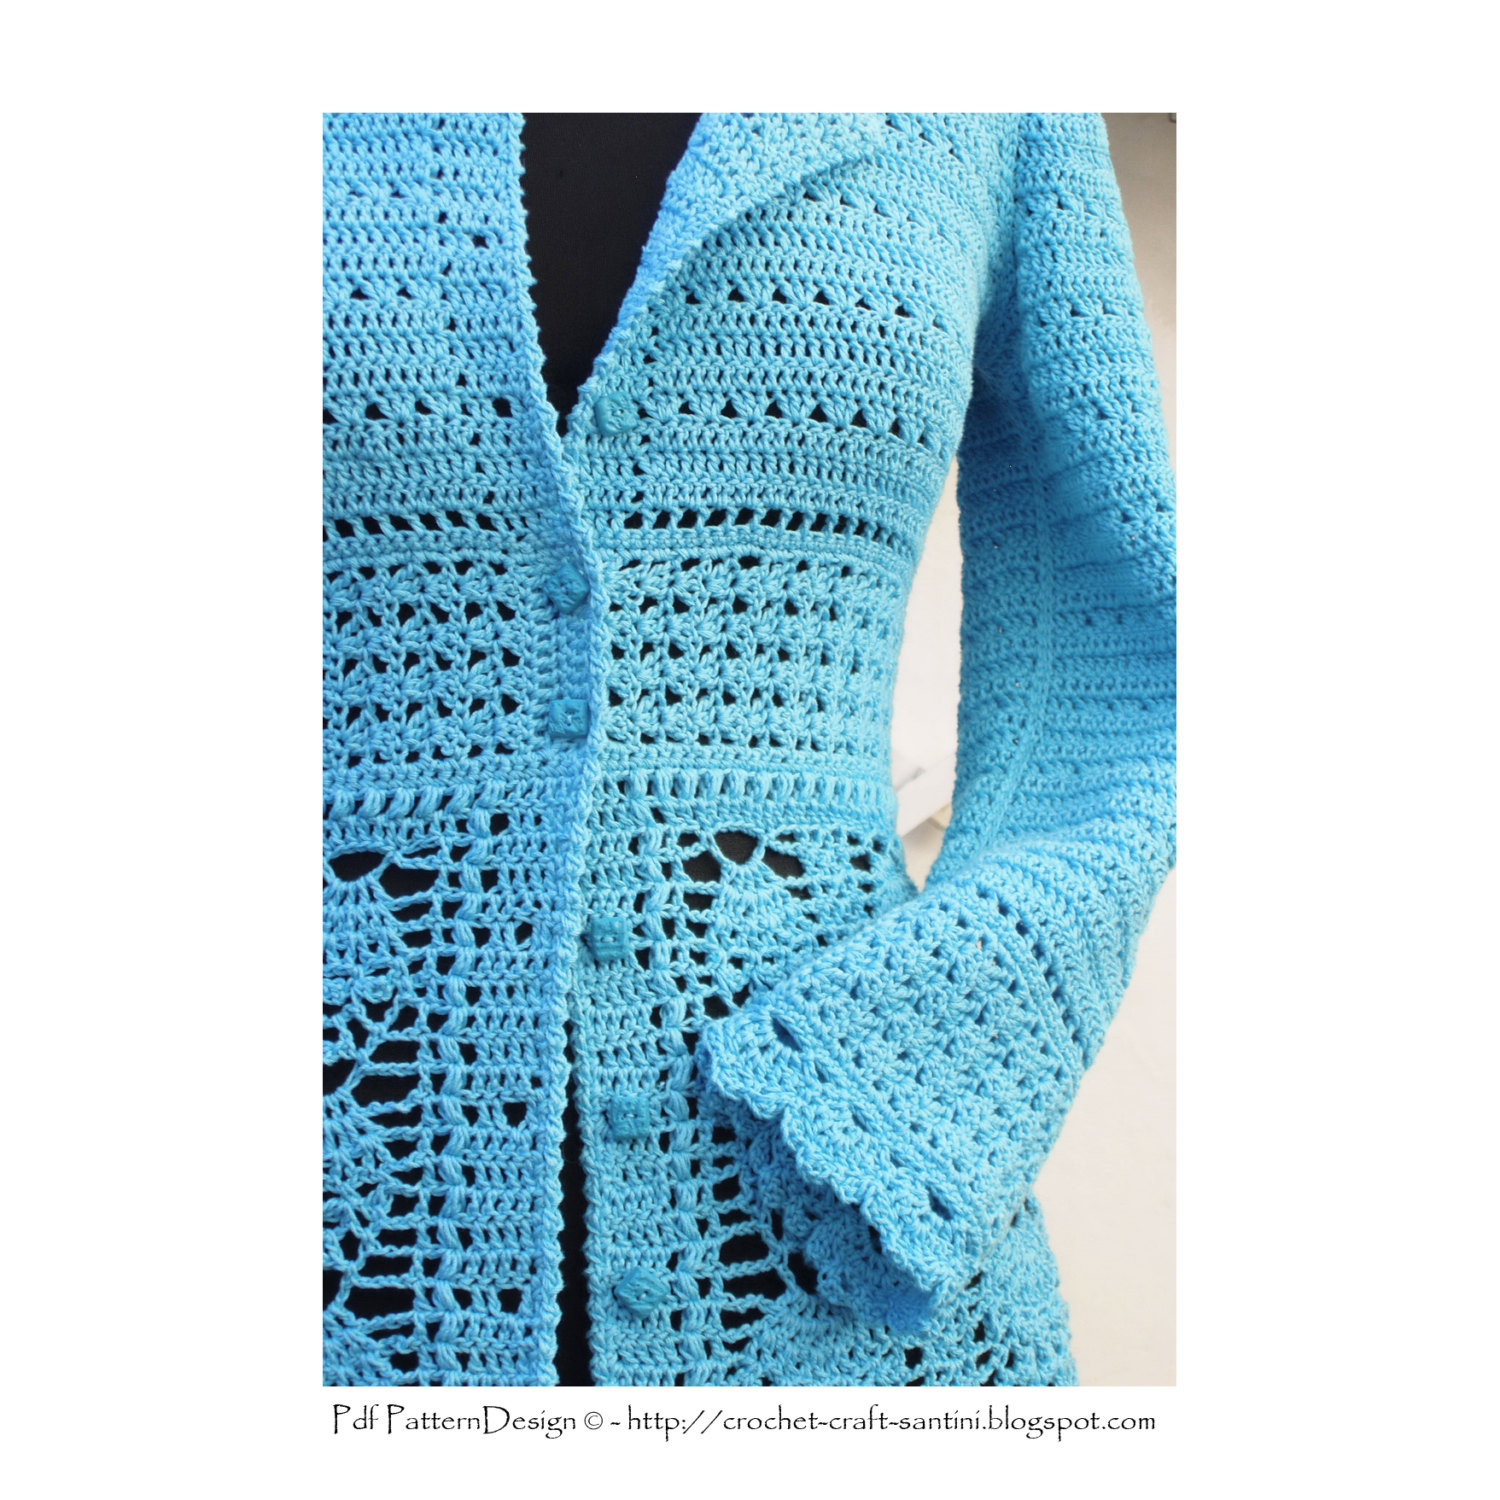 Unique Lace Cardigan Crochet Pattern Instant Download Crochet Lace Cardigan Of Great 45 Images Crochet Lace Cardigan